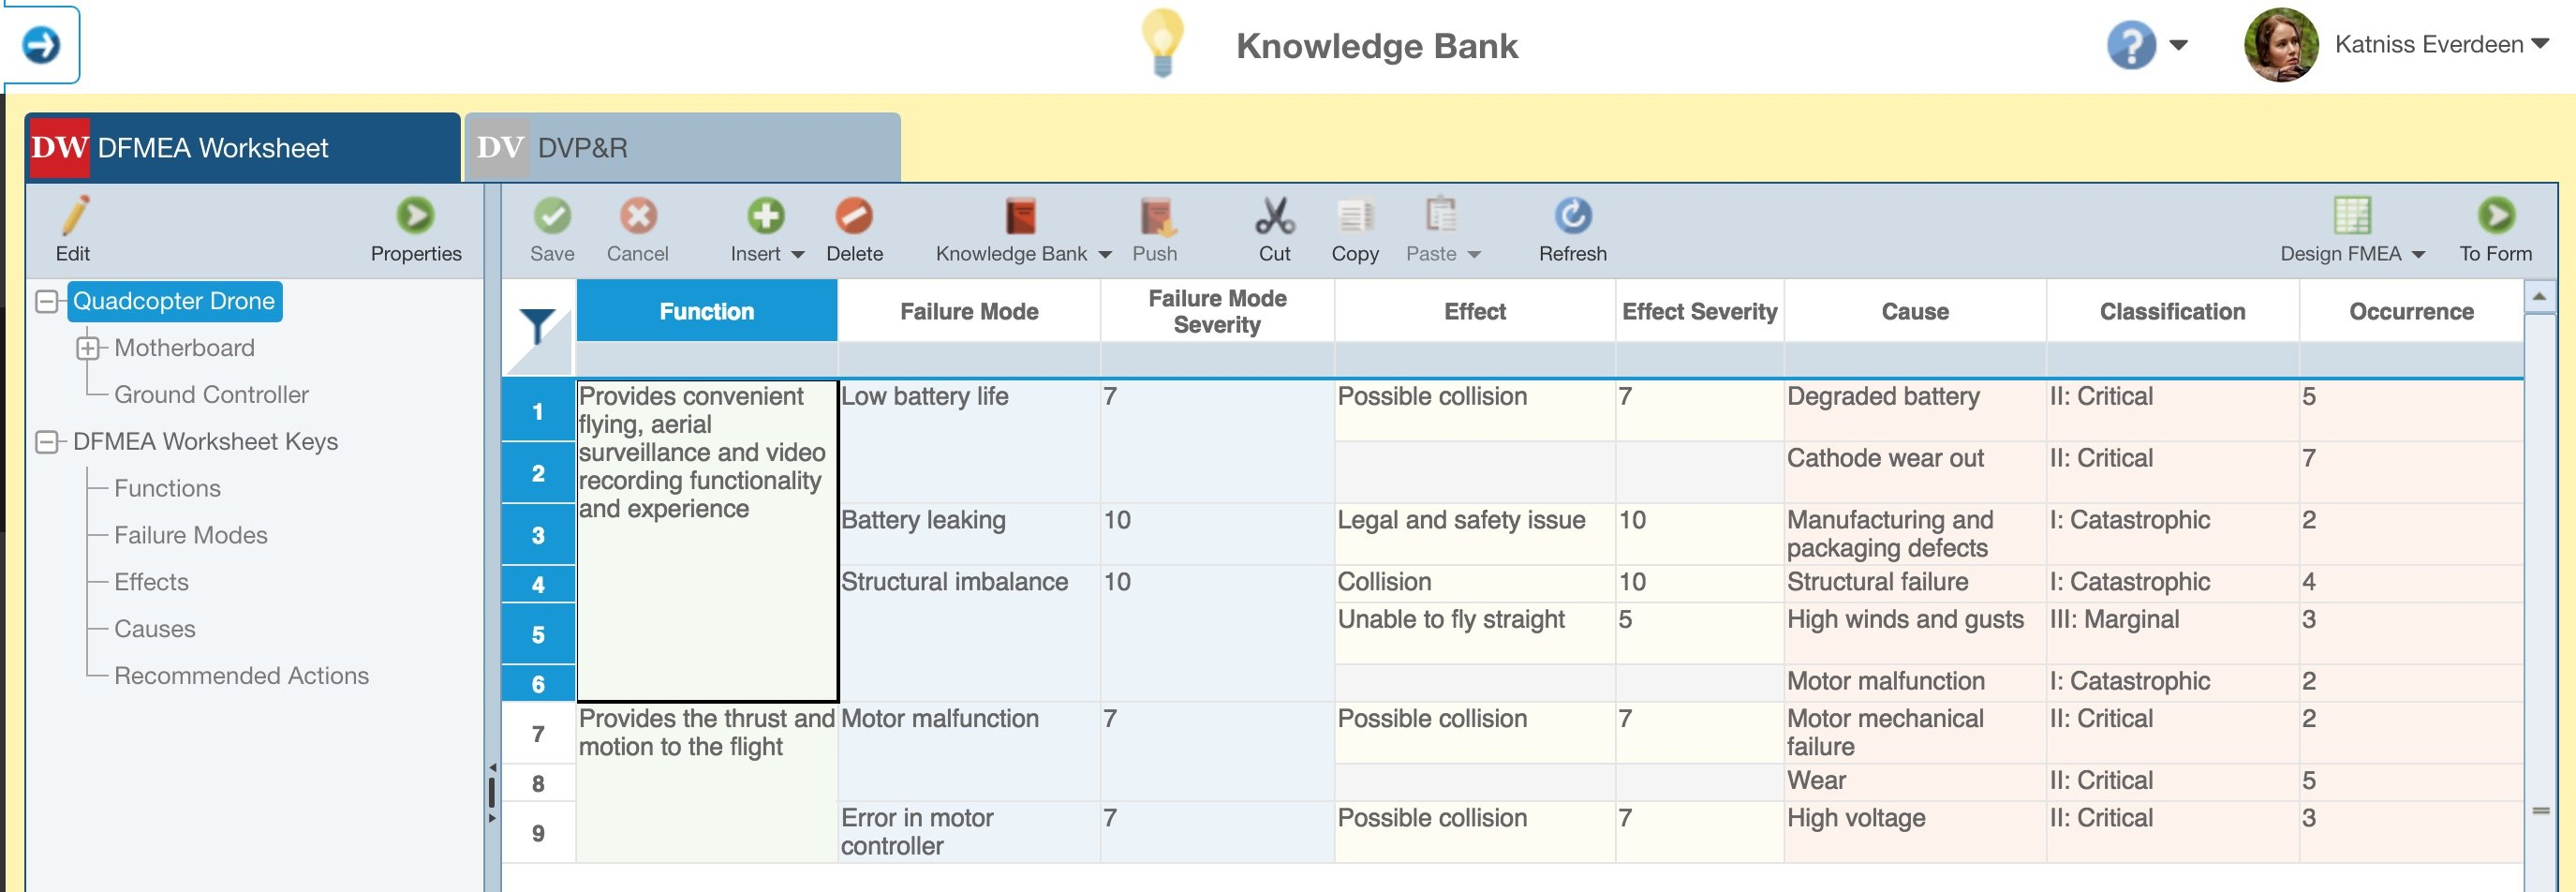 Screenshot of Relyence FMEA Knowledge Bank